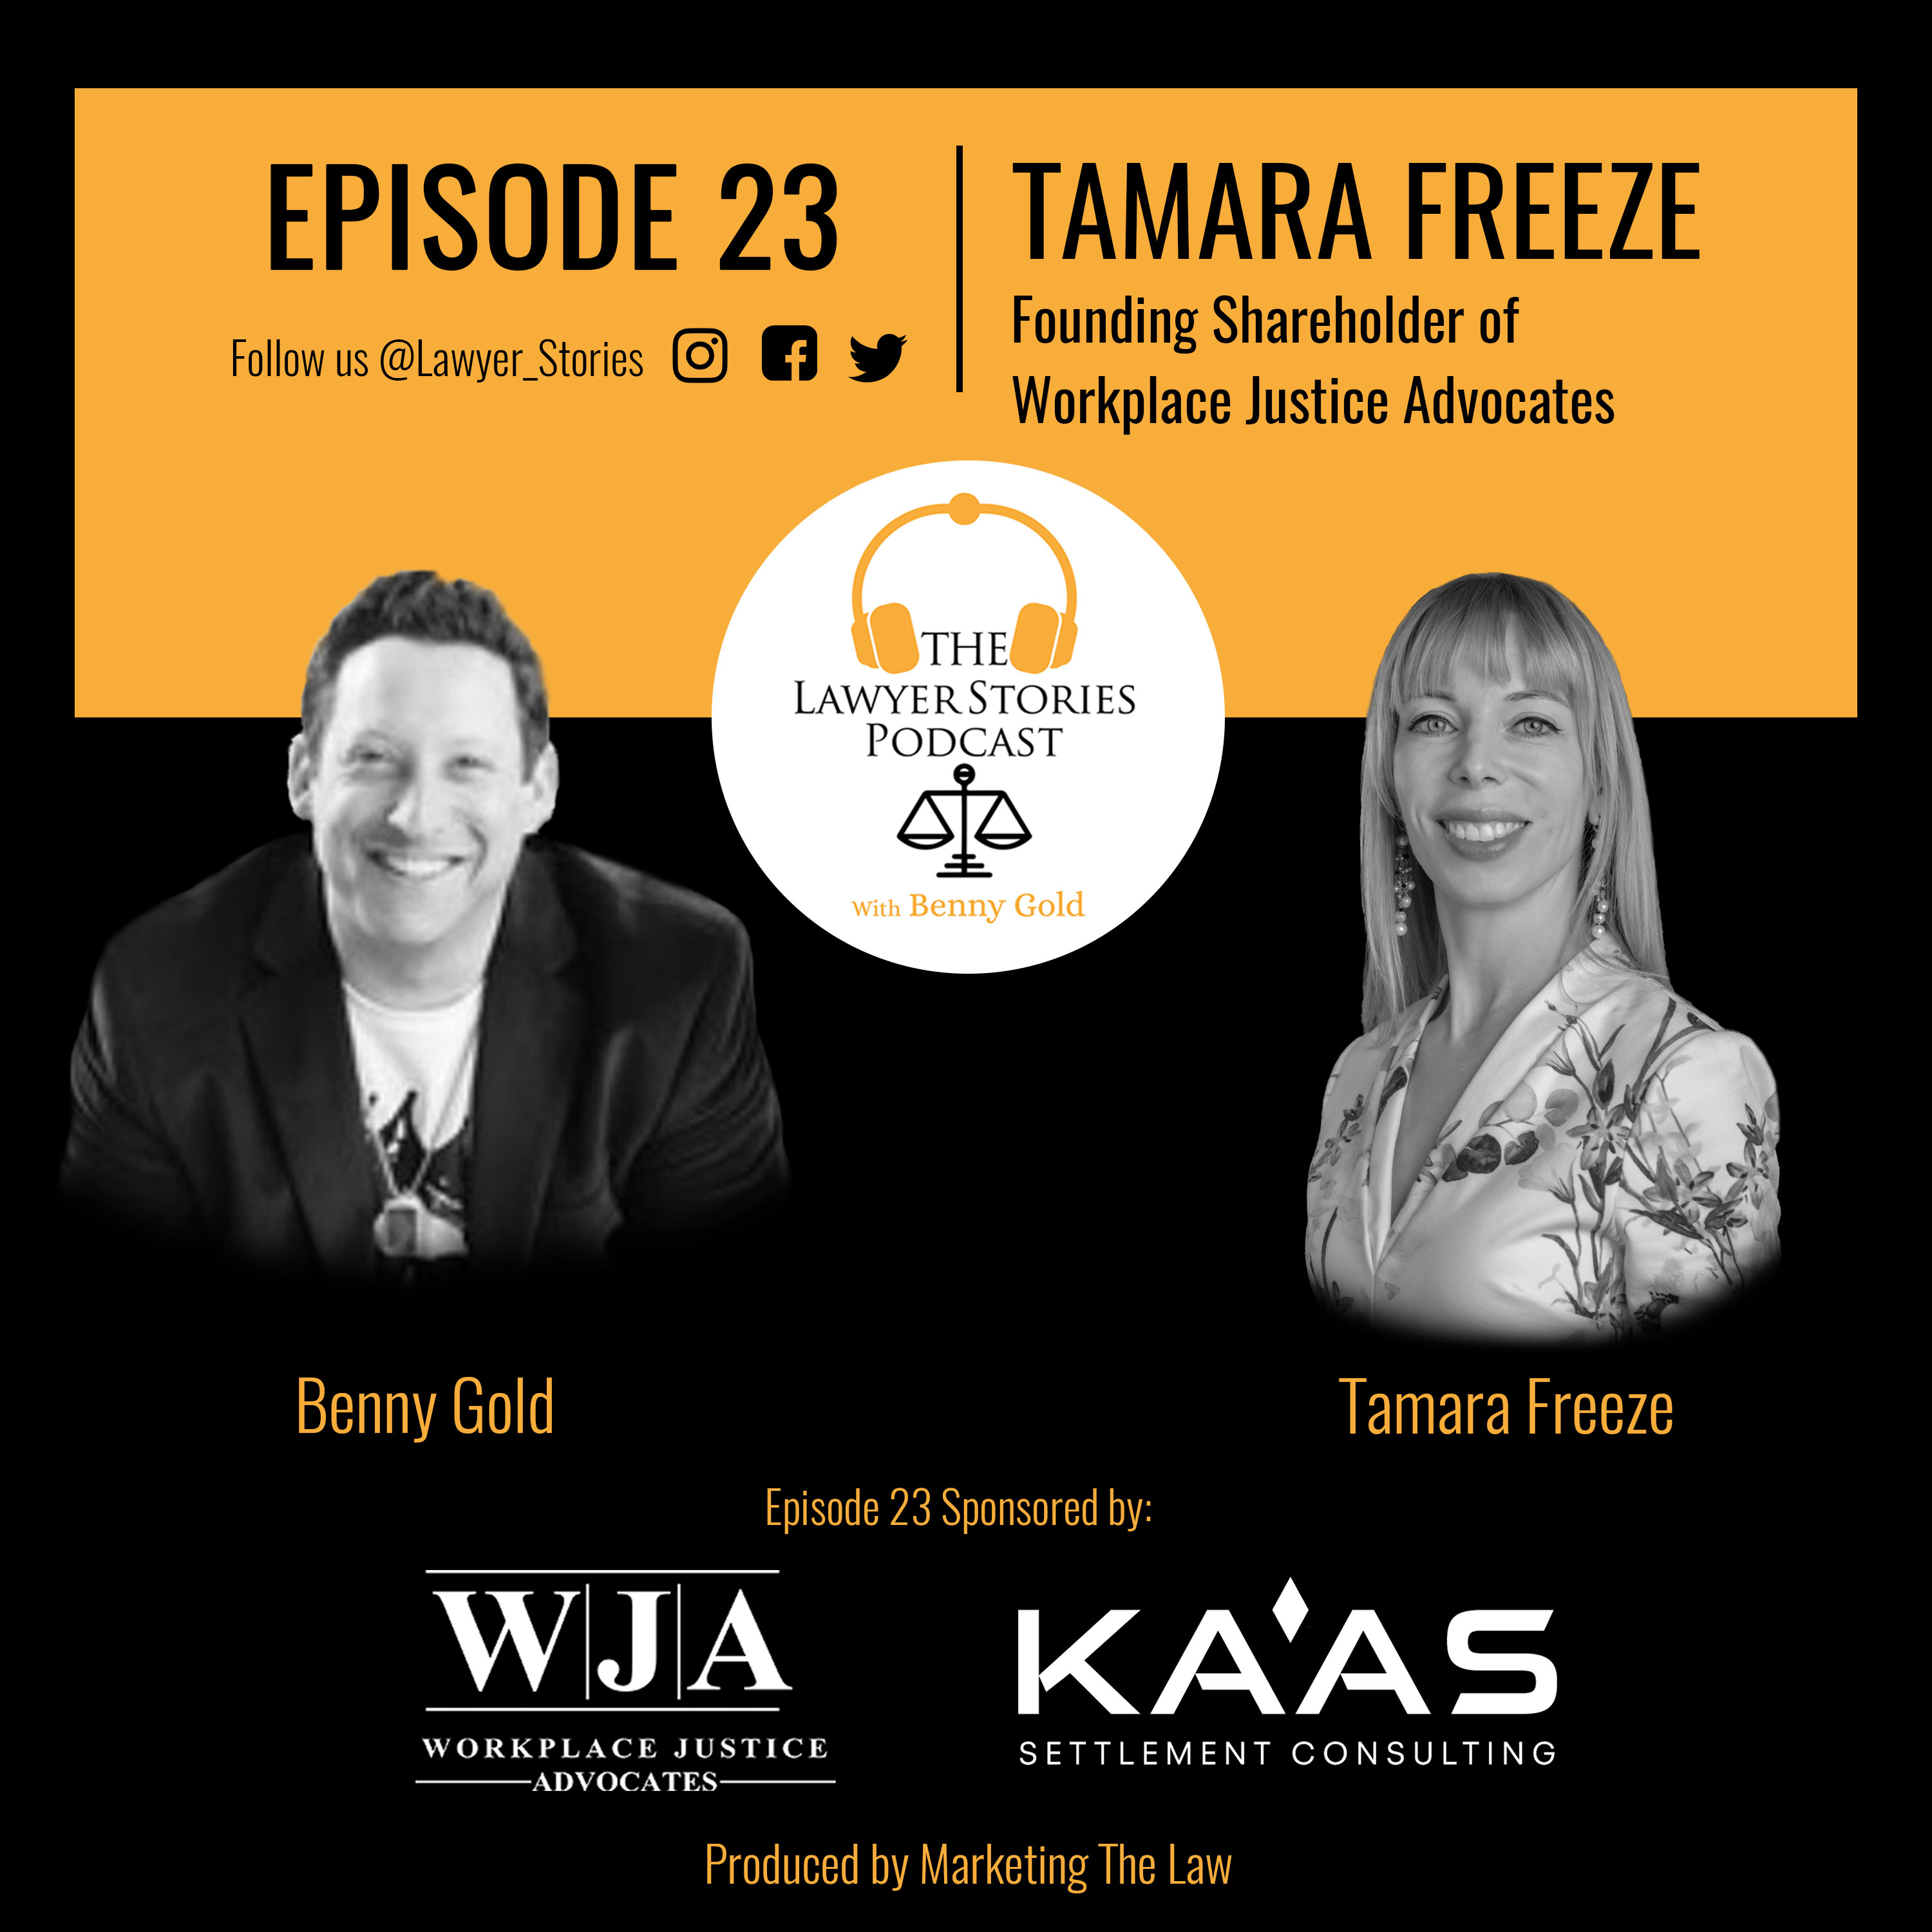 The Lawyer Stories Podcast Episode 23, featuring Tamara Freeze.